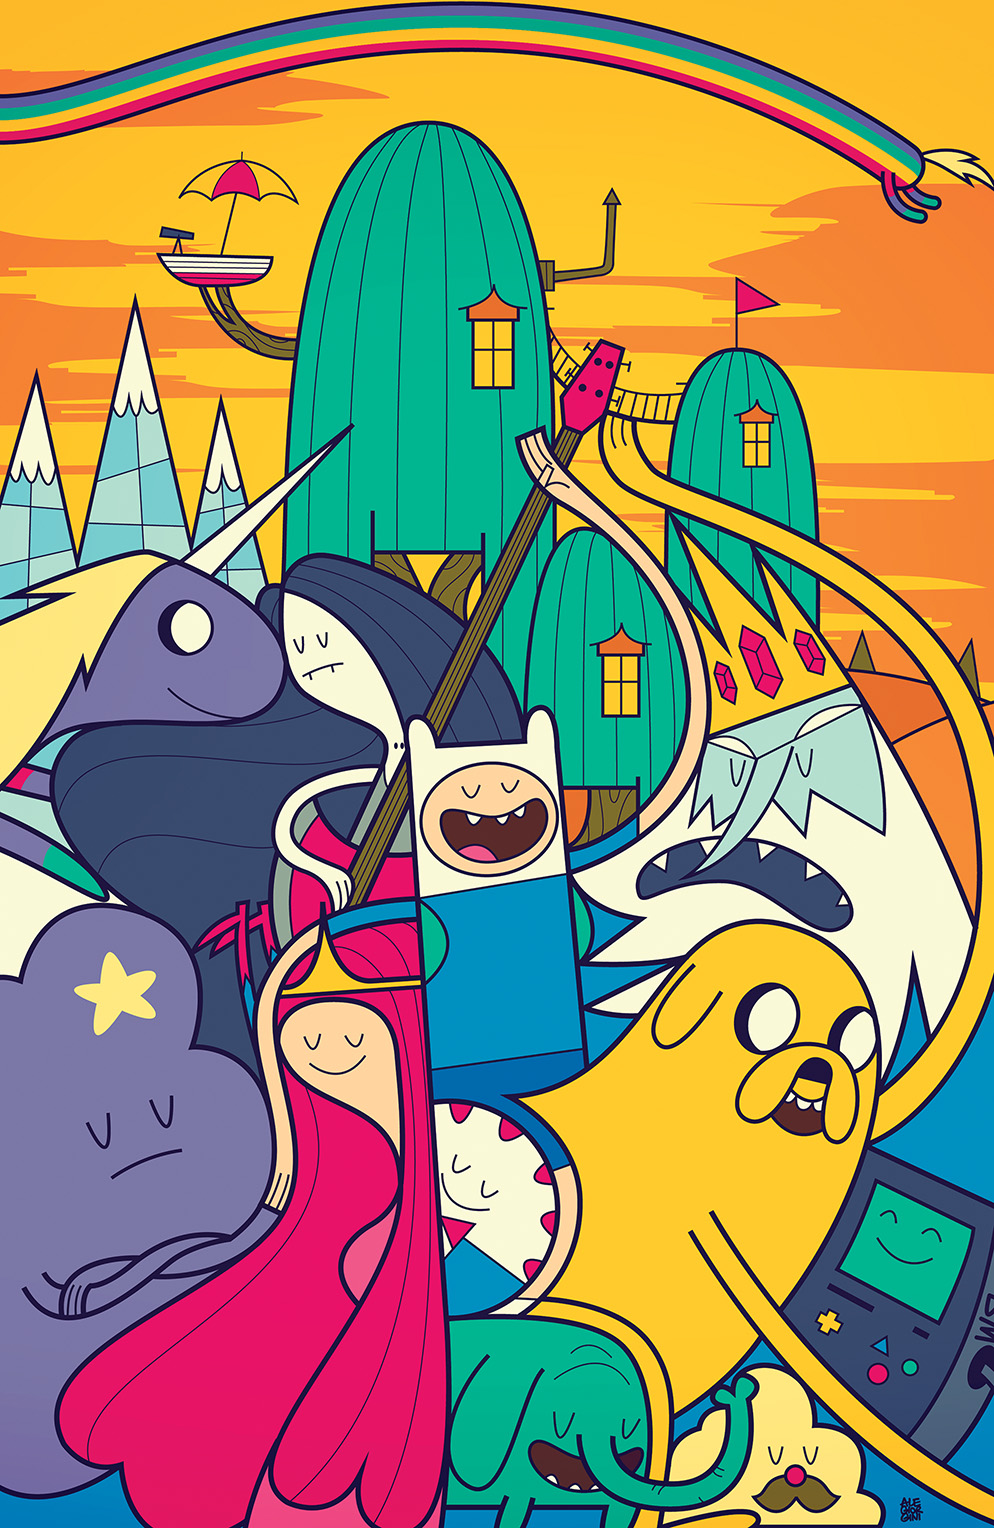 Adventure Time #36 Cover B by Ale Giorini